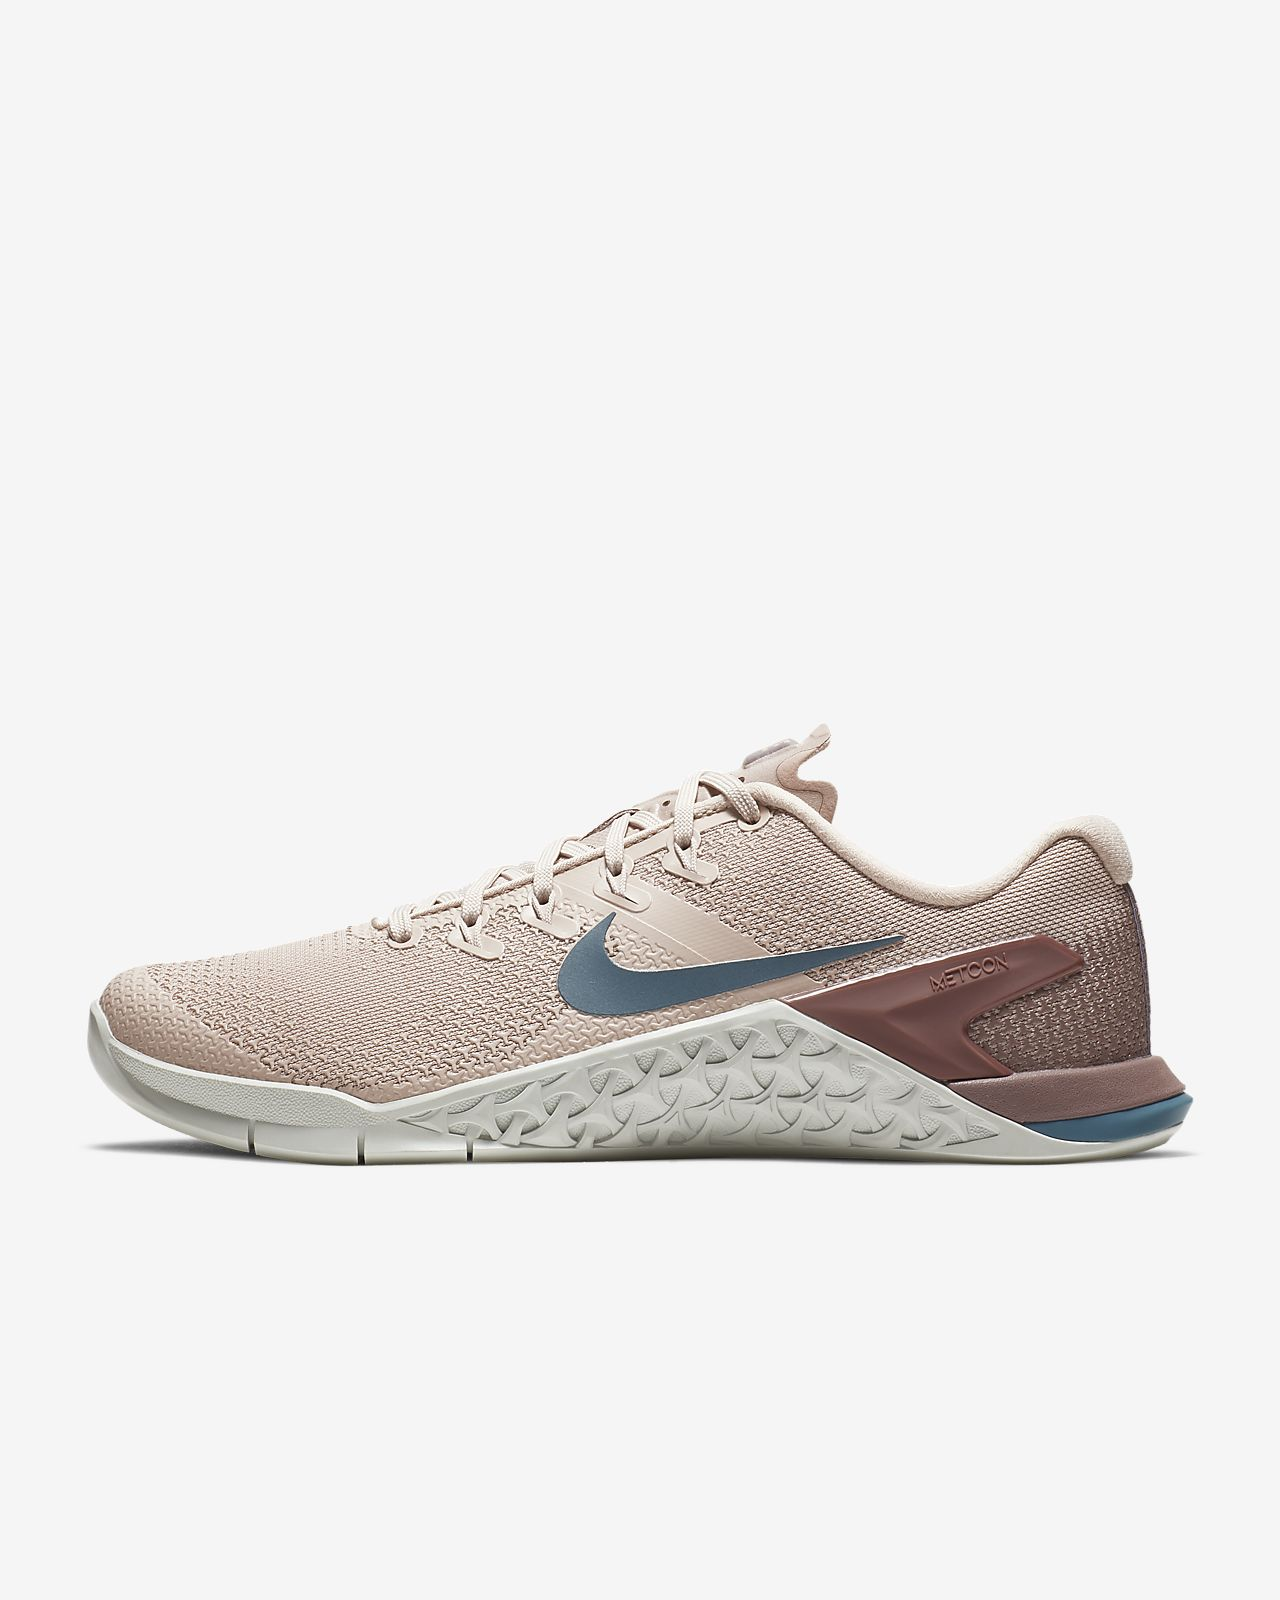 9c9a1ec960eb cheap nike free run 5.0 v2 women shoes in light gray and wine 82918 5d351   authentic nike metcon 4 womens cross training weightlifting shoe 3329c 3df5a